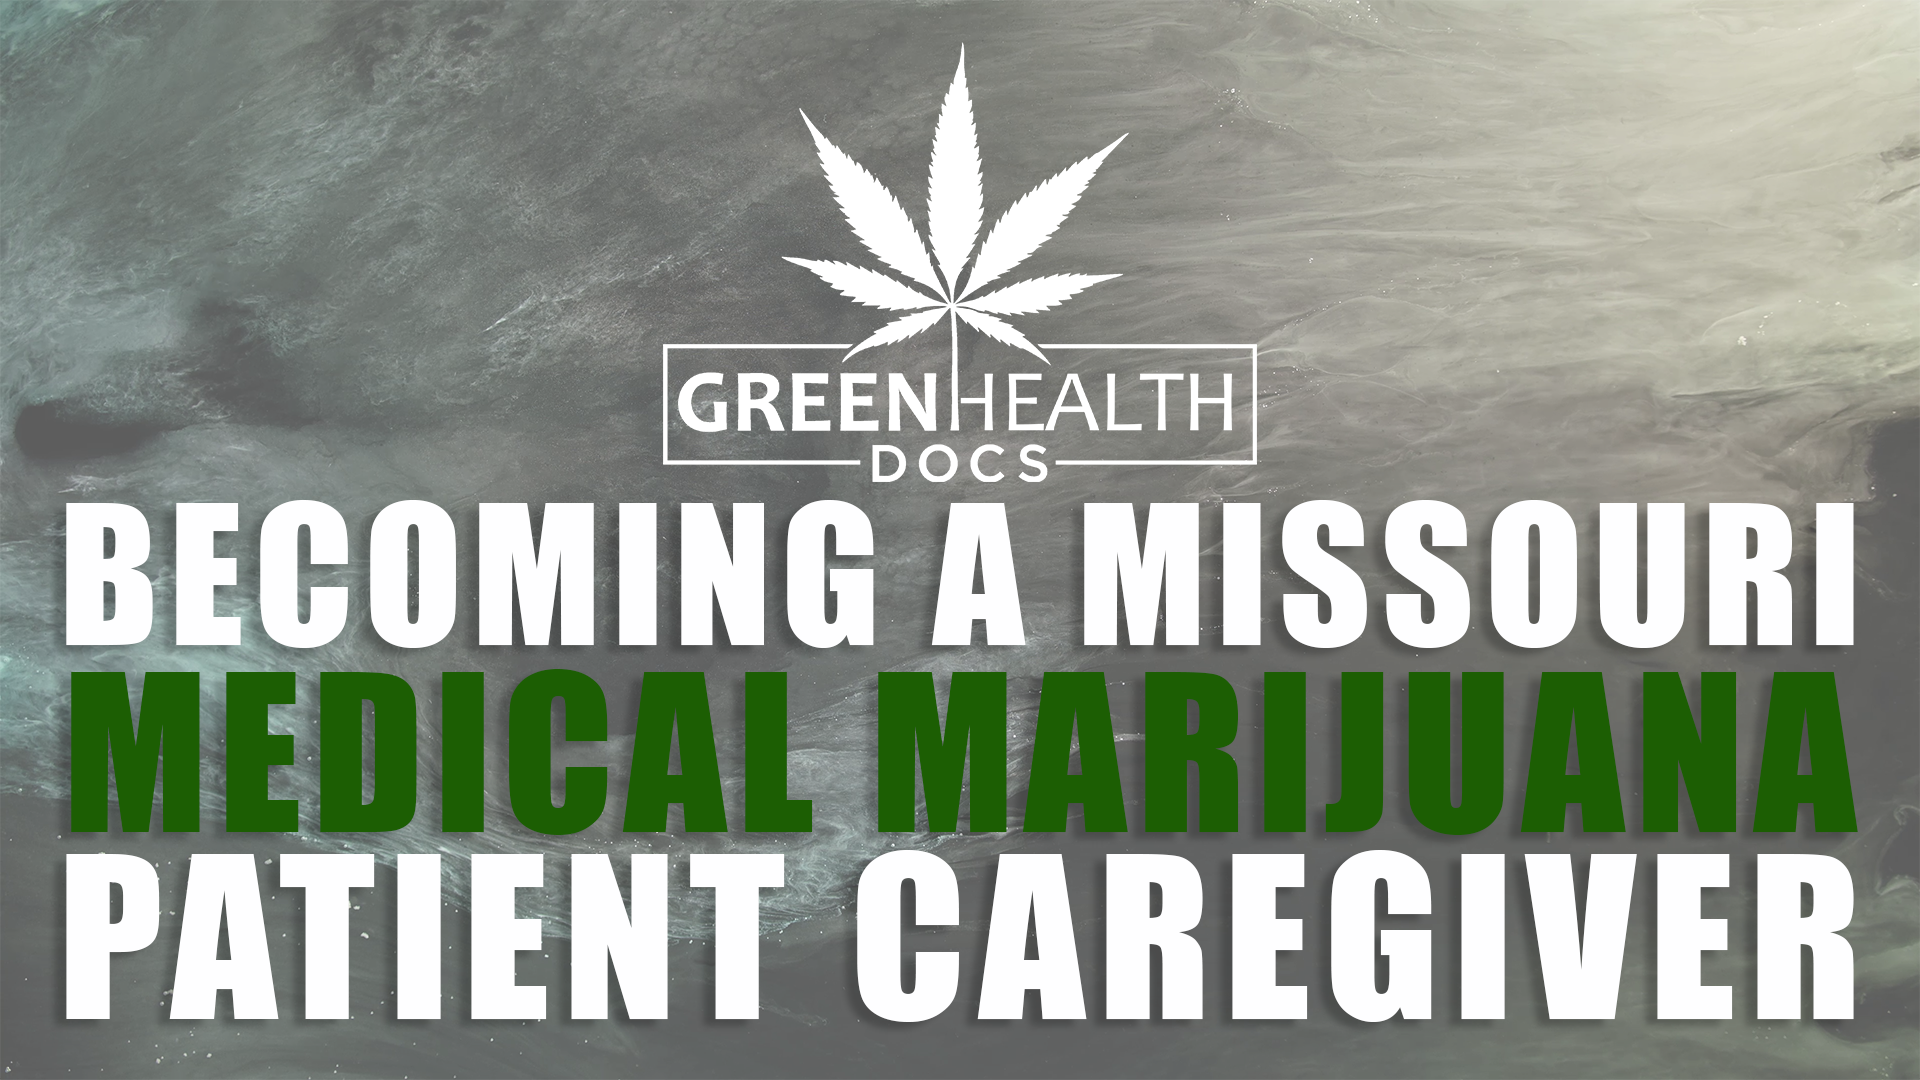 Medical Marijuana Patient Caregiver